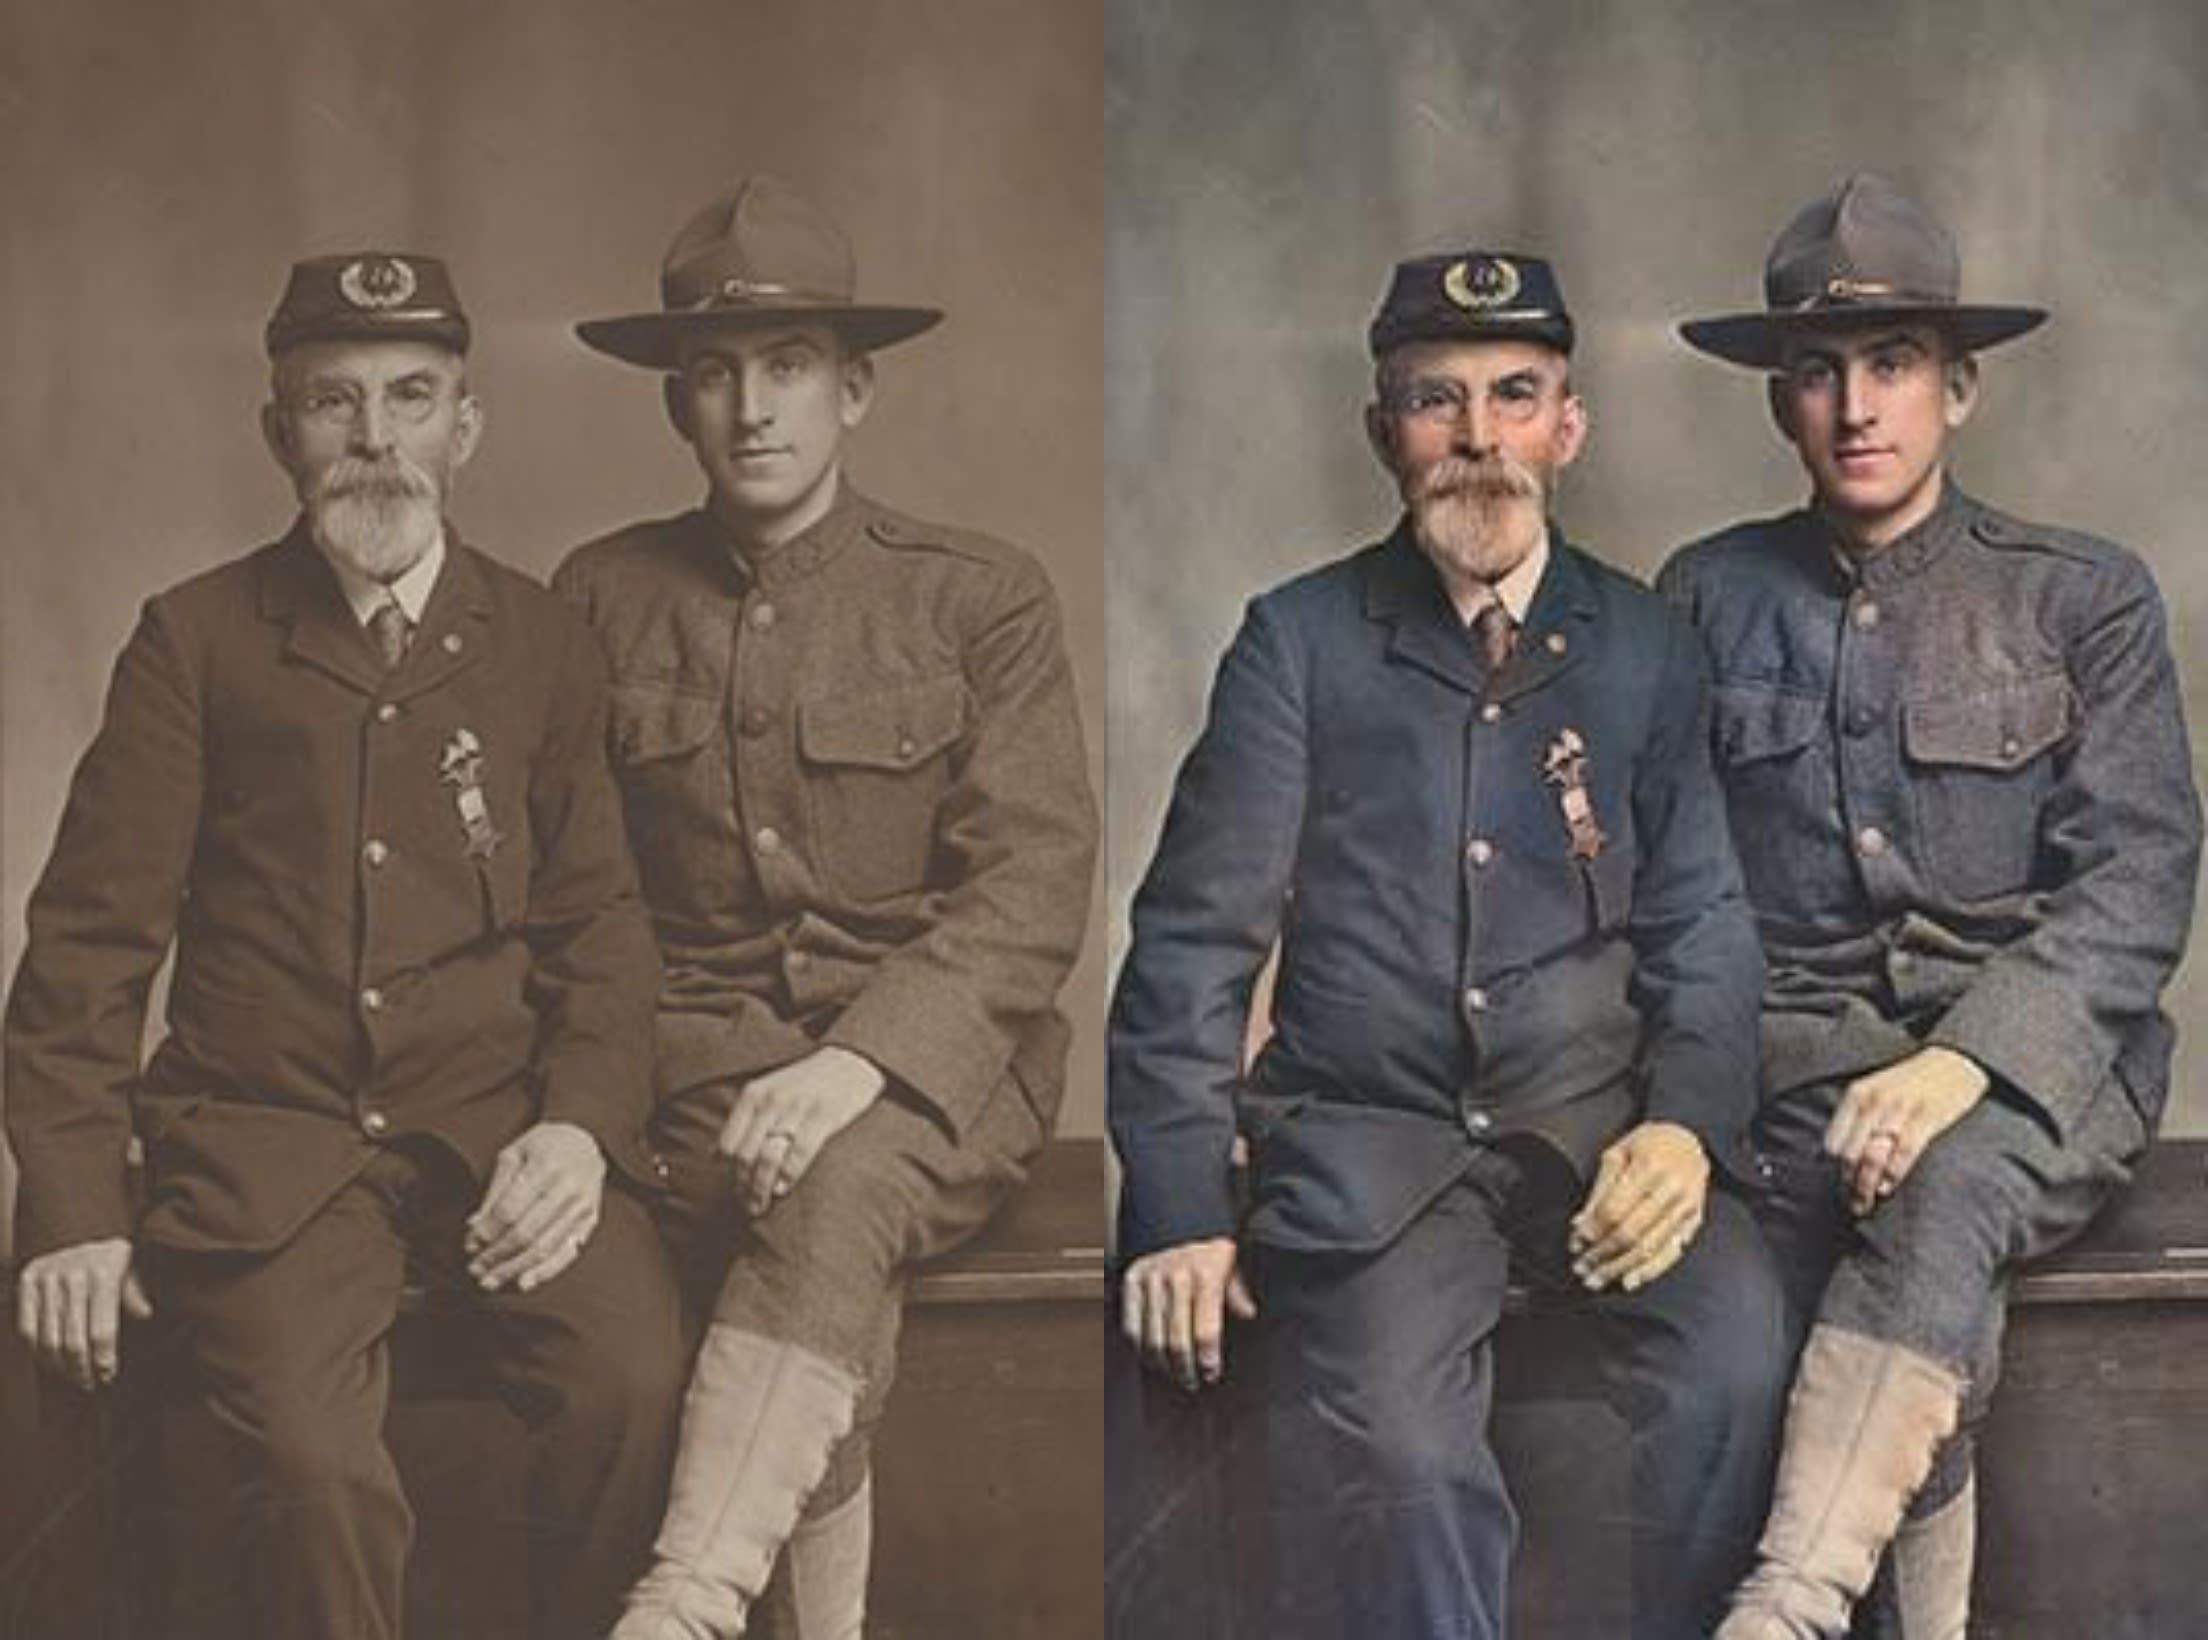 We will colorize your black and white photos